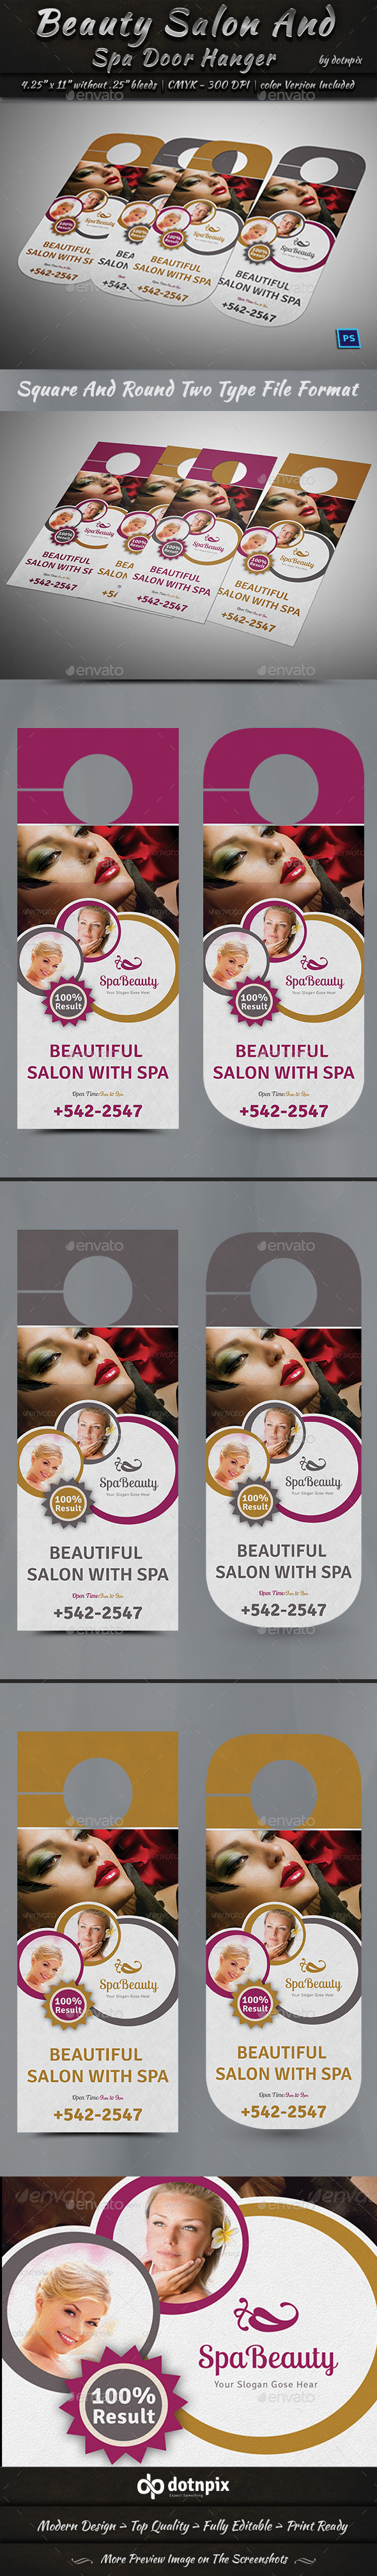 Beauty Salon And Spa Door Hanger - Miscellaneous Print Templates